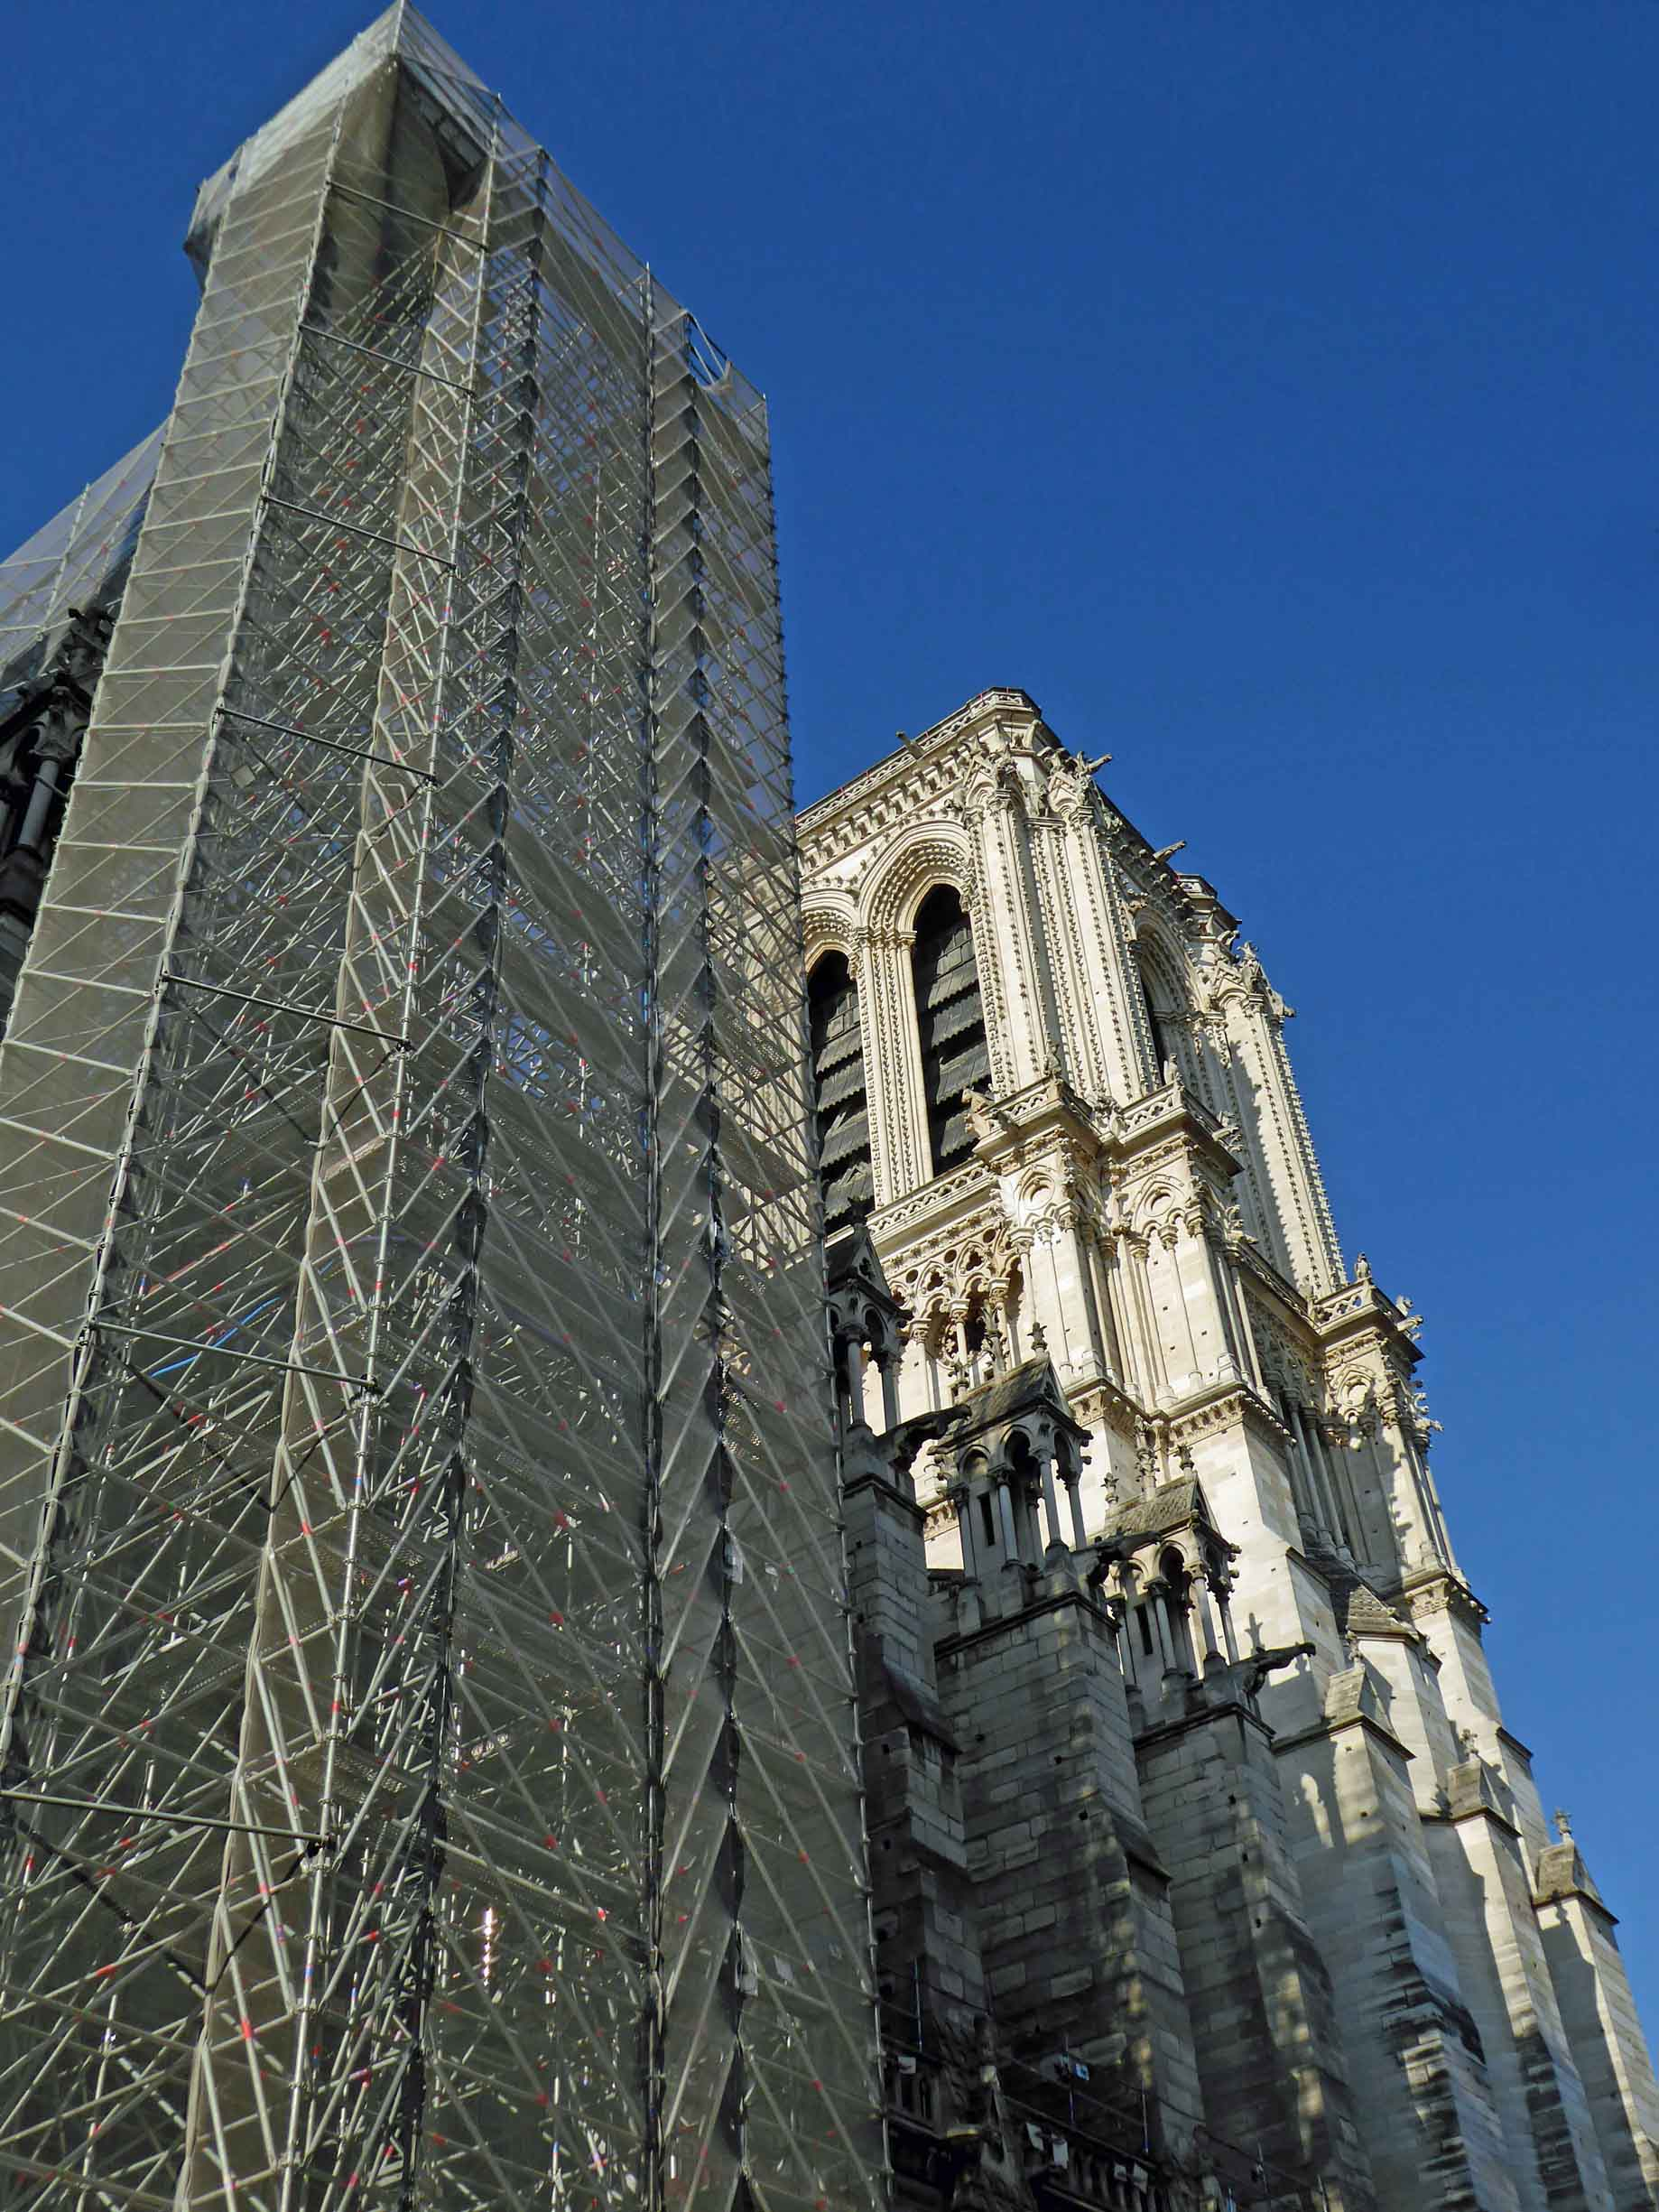 Large cathedral with one tower hidden by scaffolding